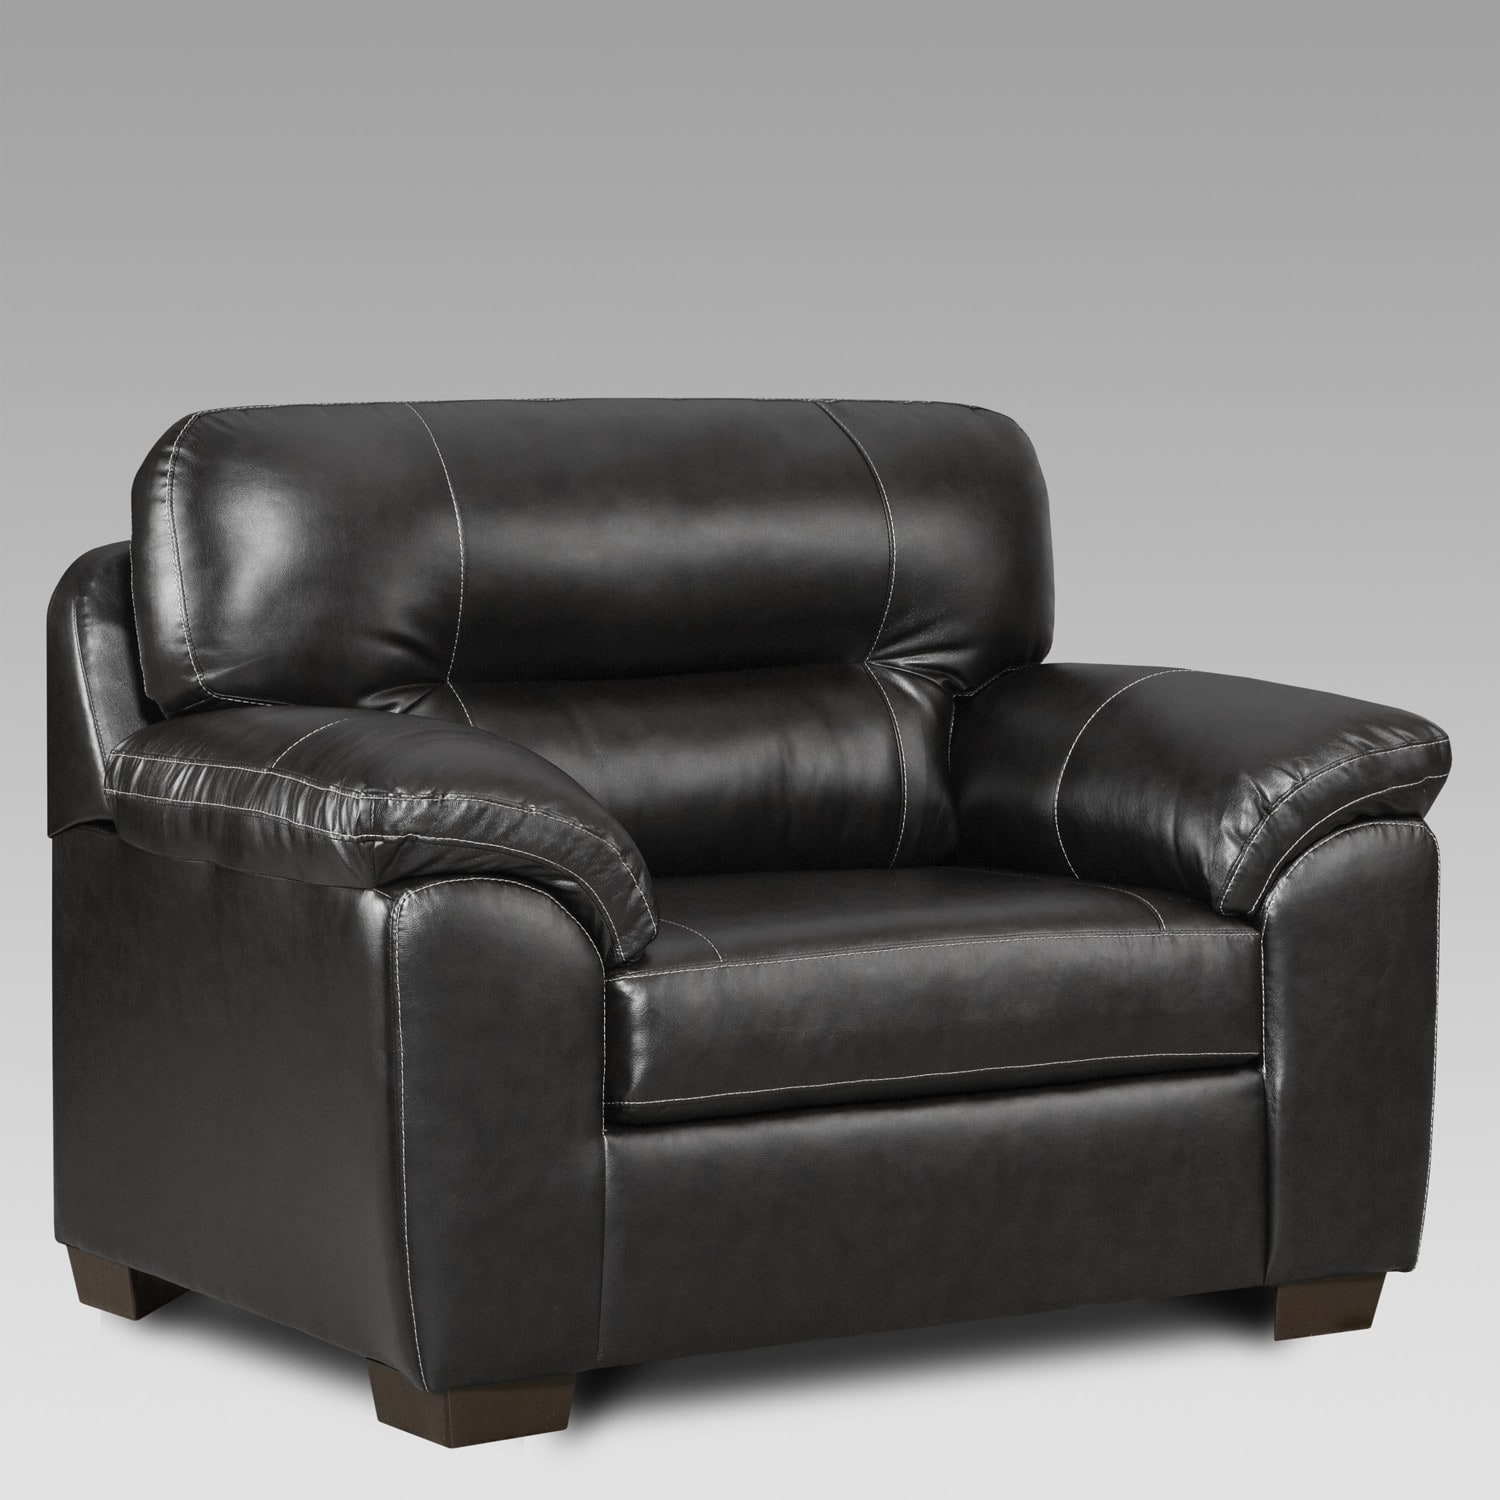 Oliver & James Aarts Faux-leather Oversized Chair by Overstock